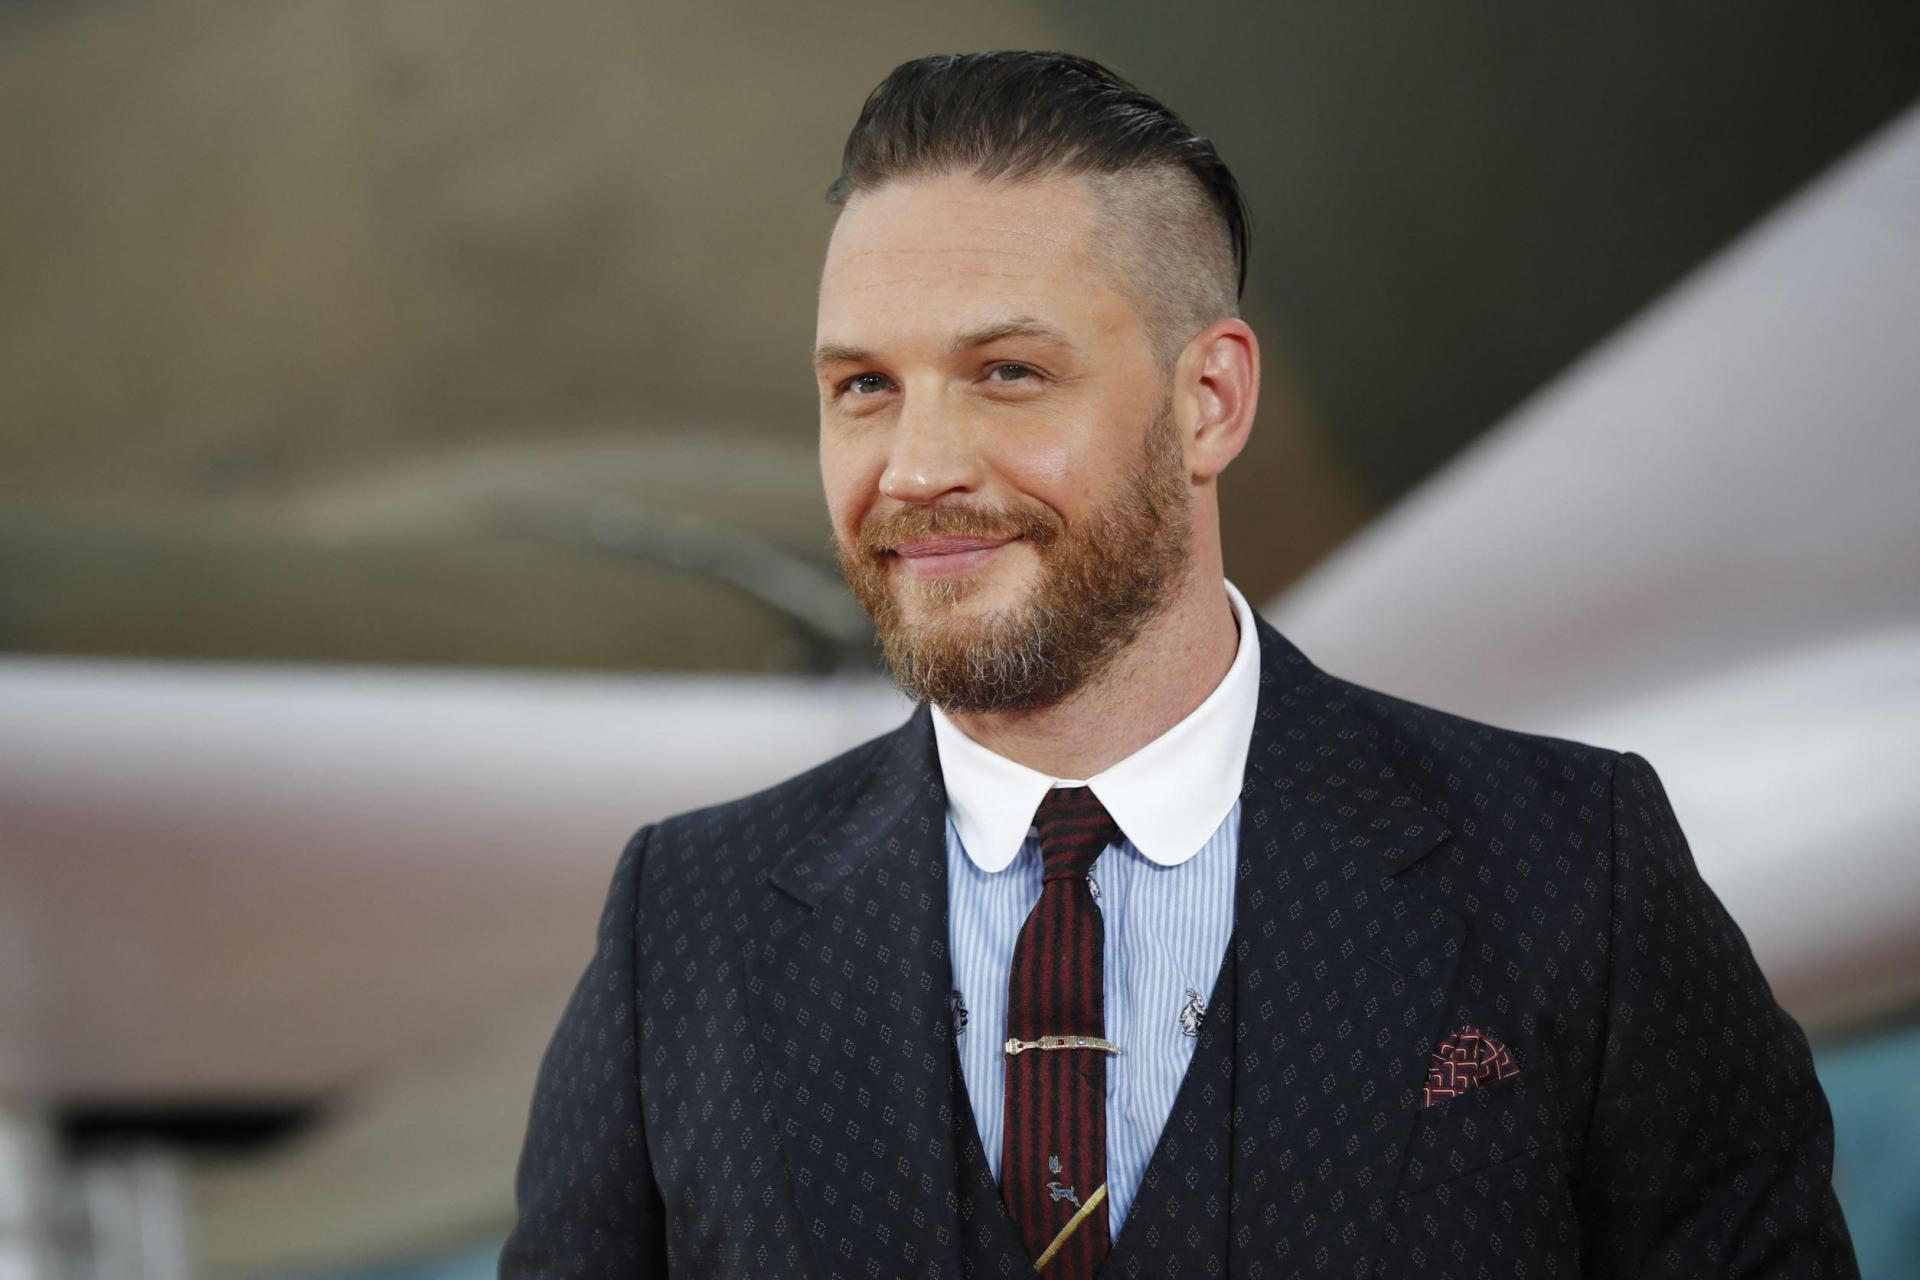 British actor Tom Hardy is one of the candidates to be the new James Bond. Photo: Tolga Akmen/AFP